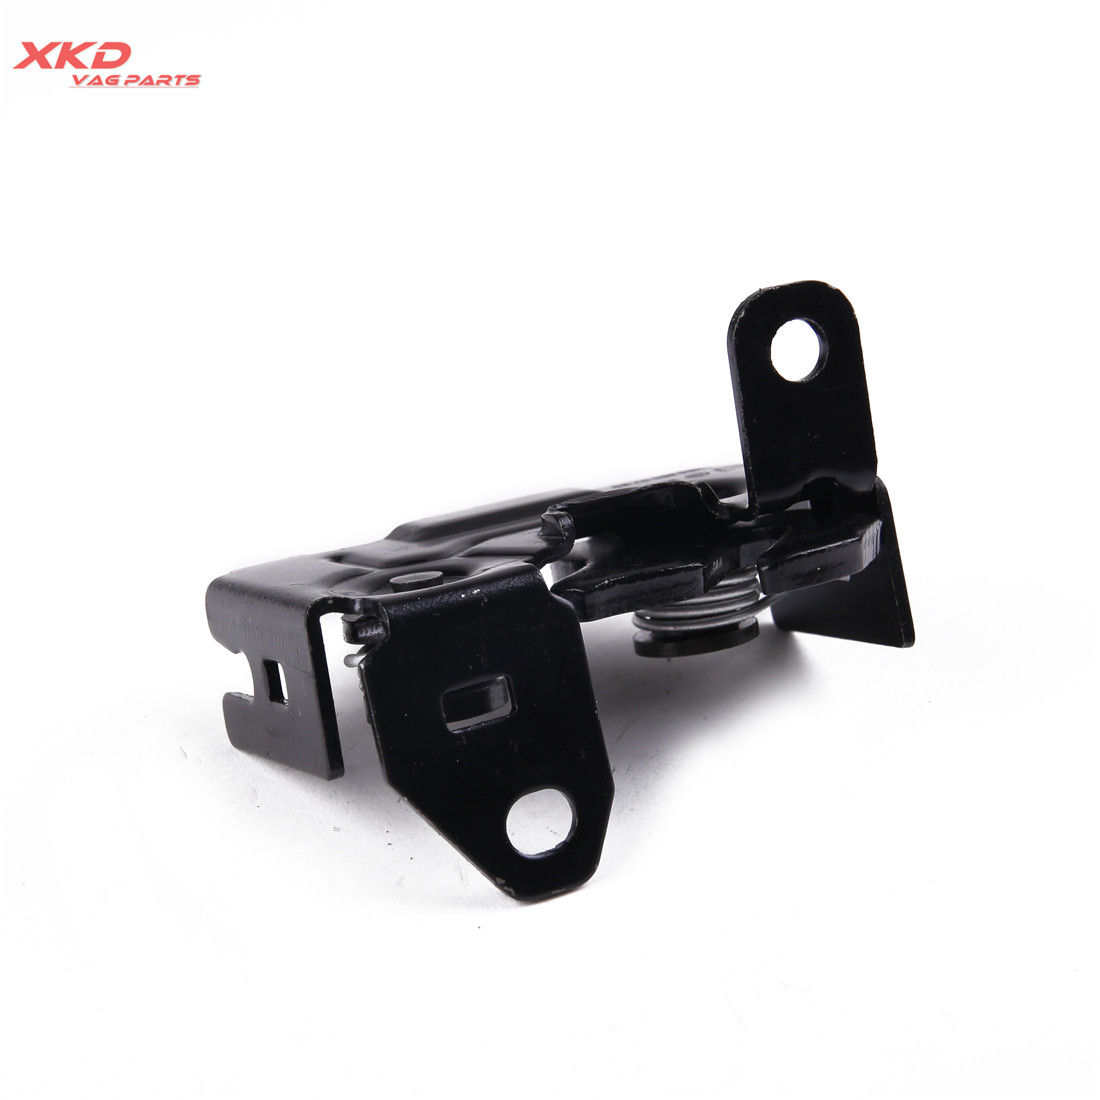 Hood Safety Catch Latch Lock For Mercedes-Benz W212 E350 2010 2011 2012 2013 14